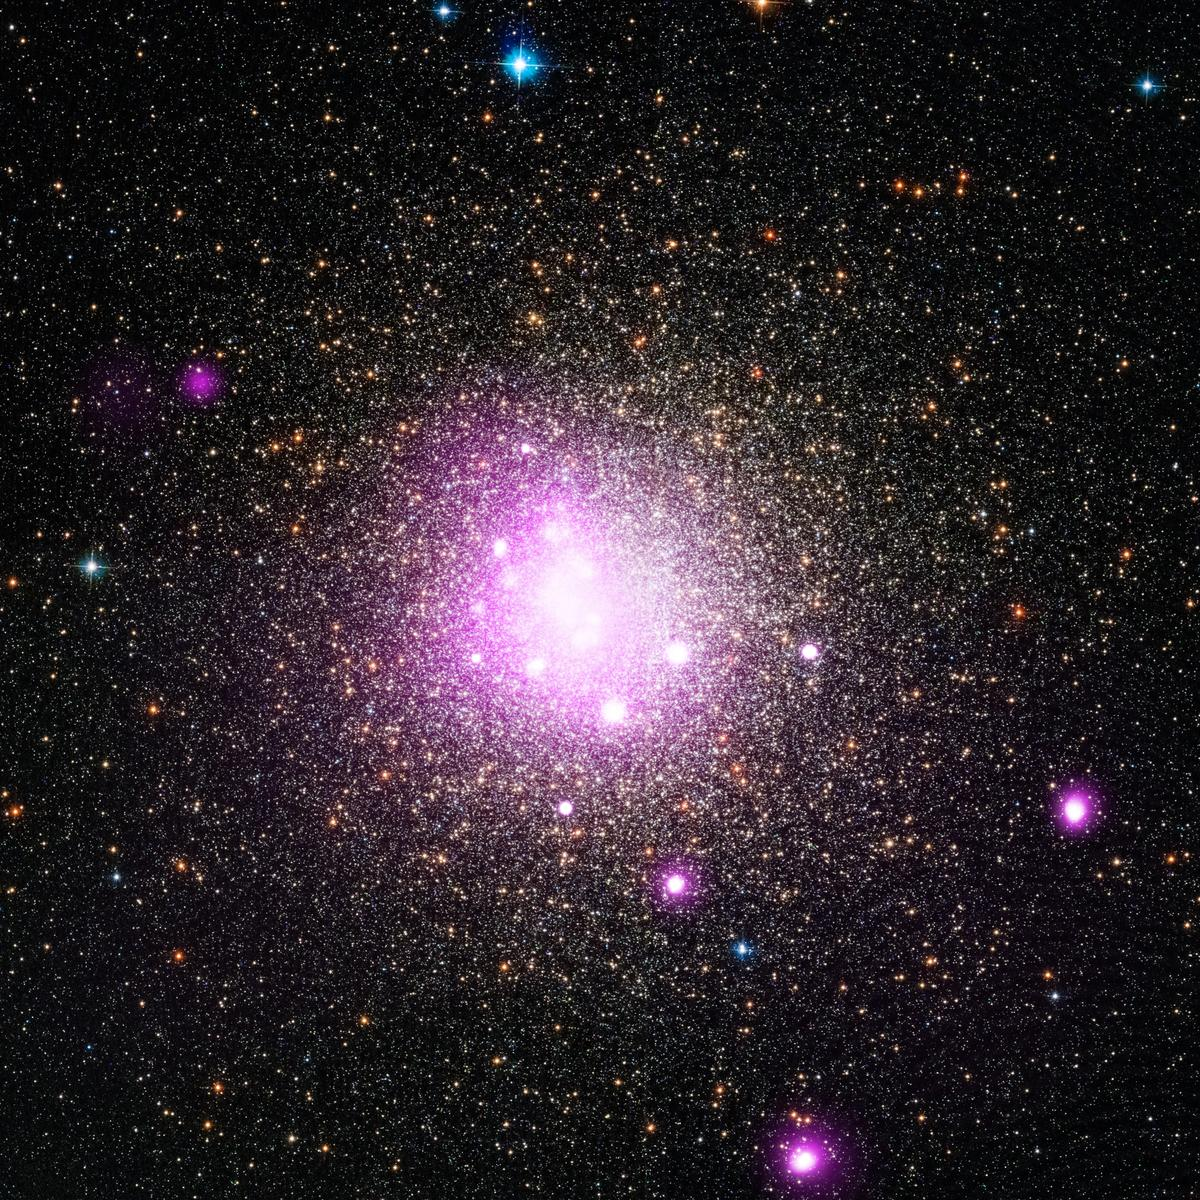 A Chandra X-ray image of the globular cluster NGC6388, where astronomers have previously foundevidence of planets destroyed bywhite dwarf stars